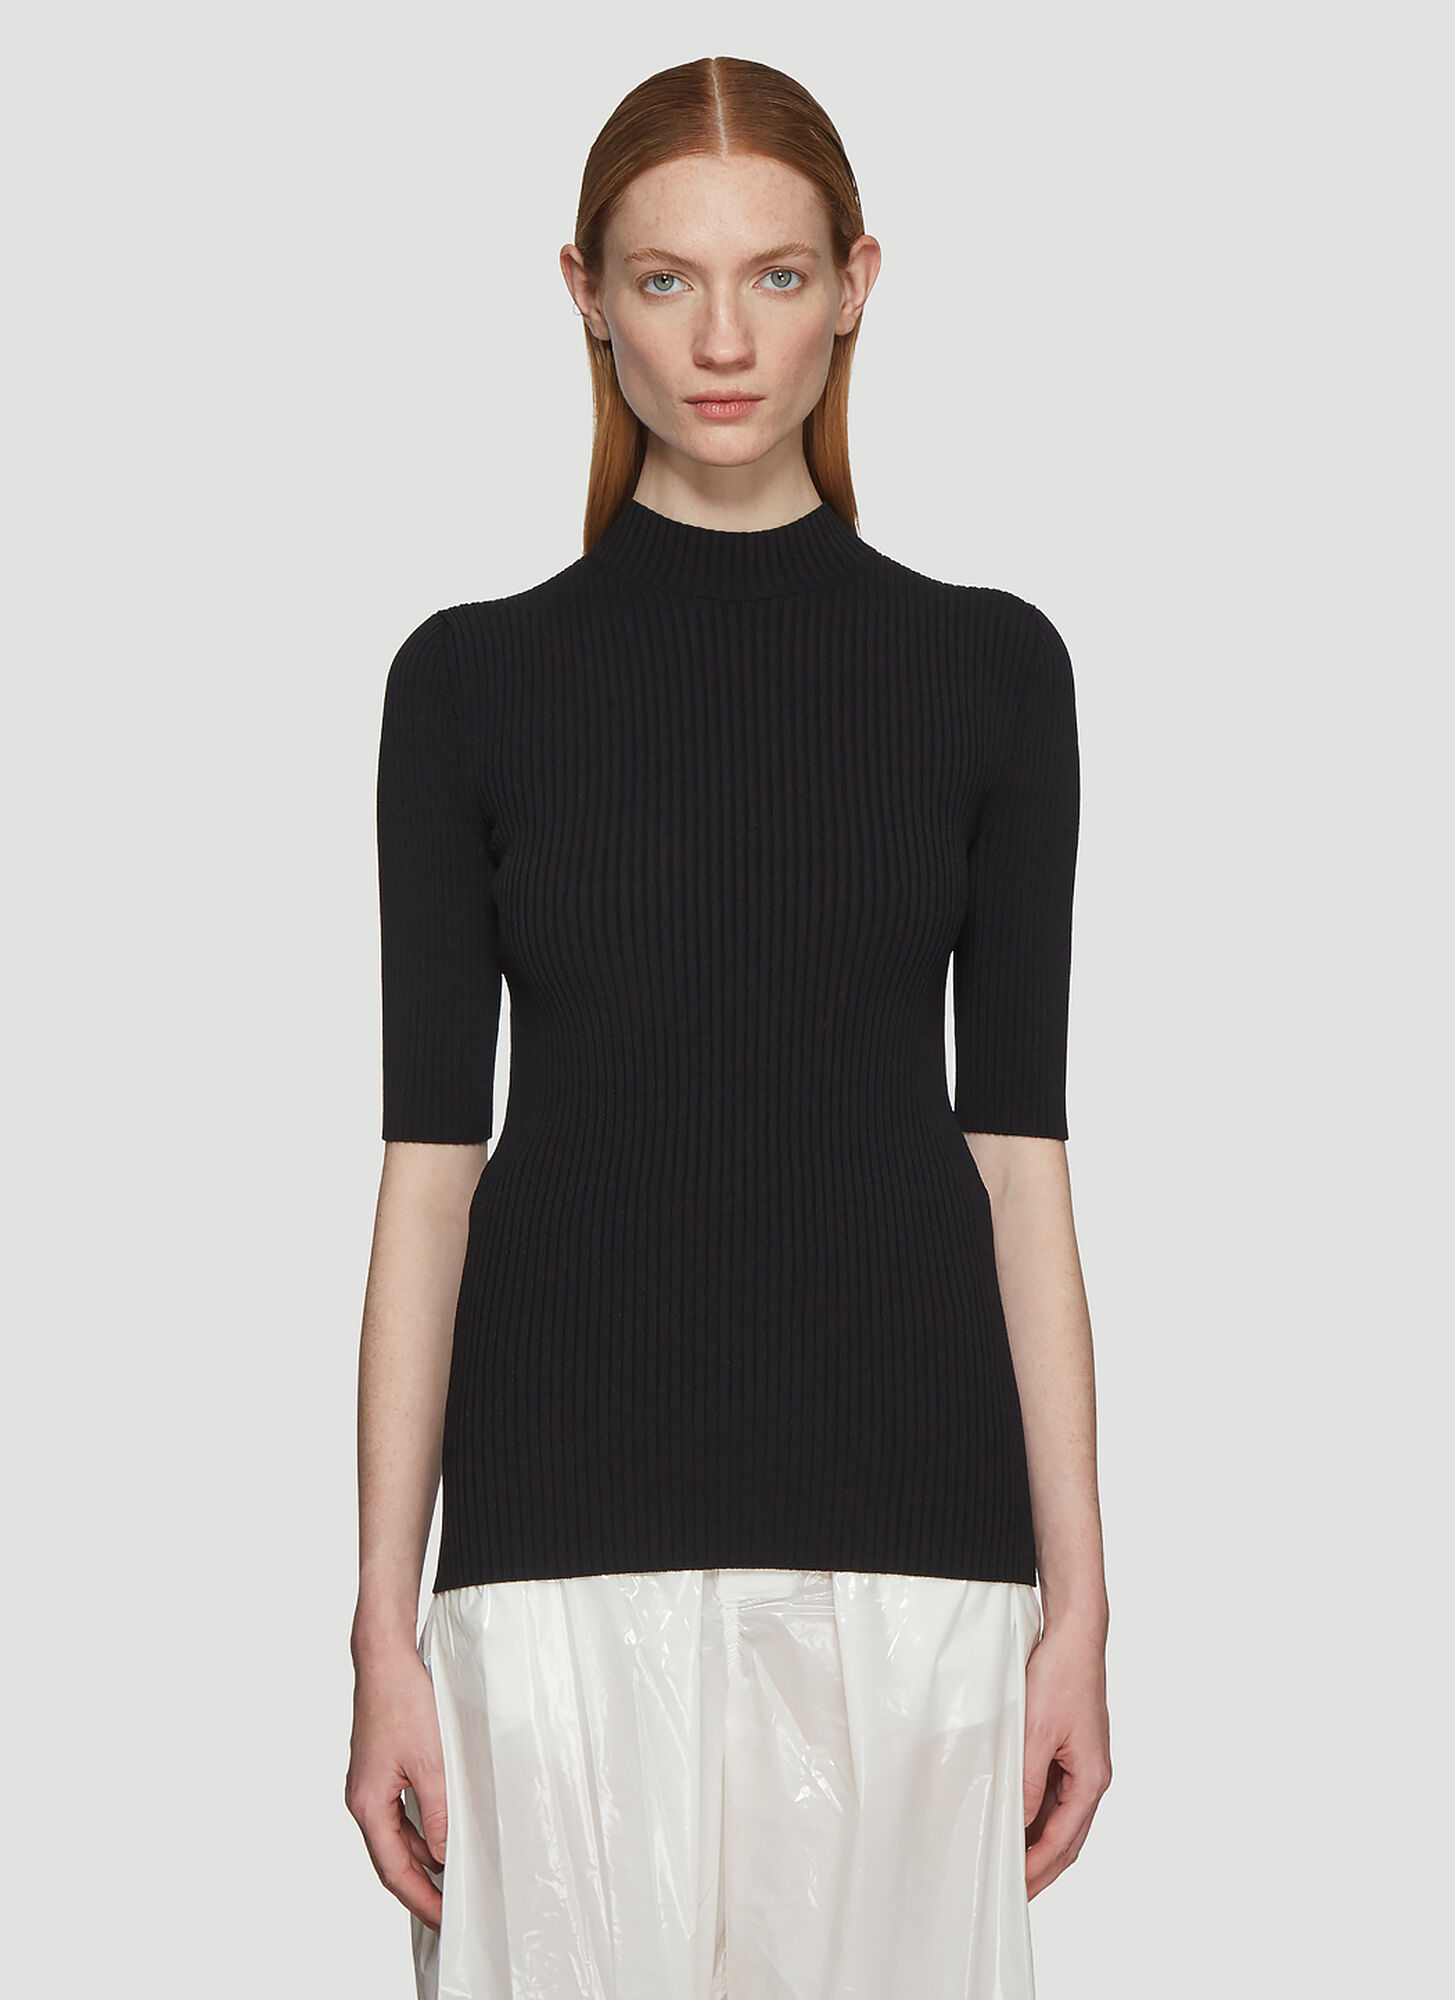 Kwaidan Editions Ribbed Turtleneck Top in Black